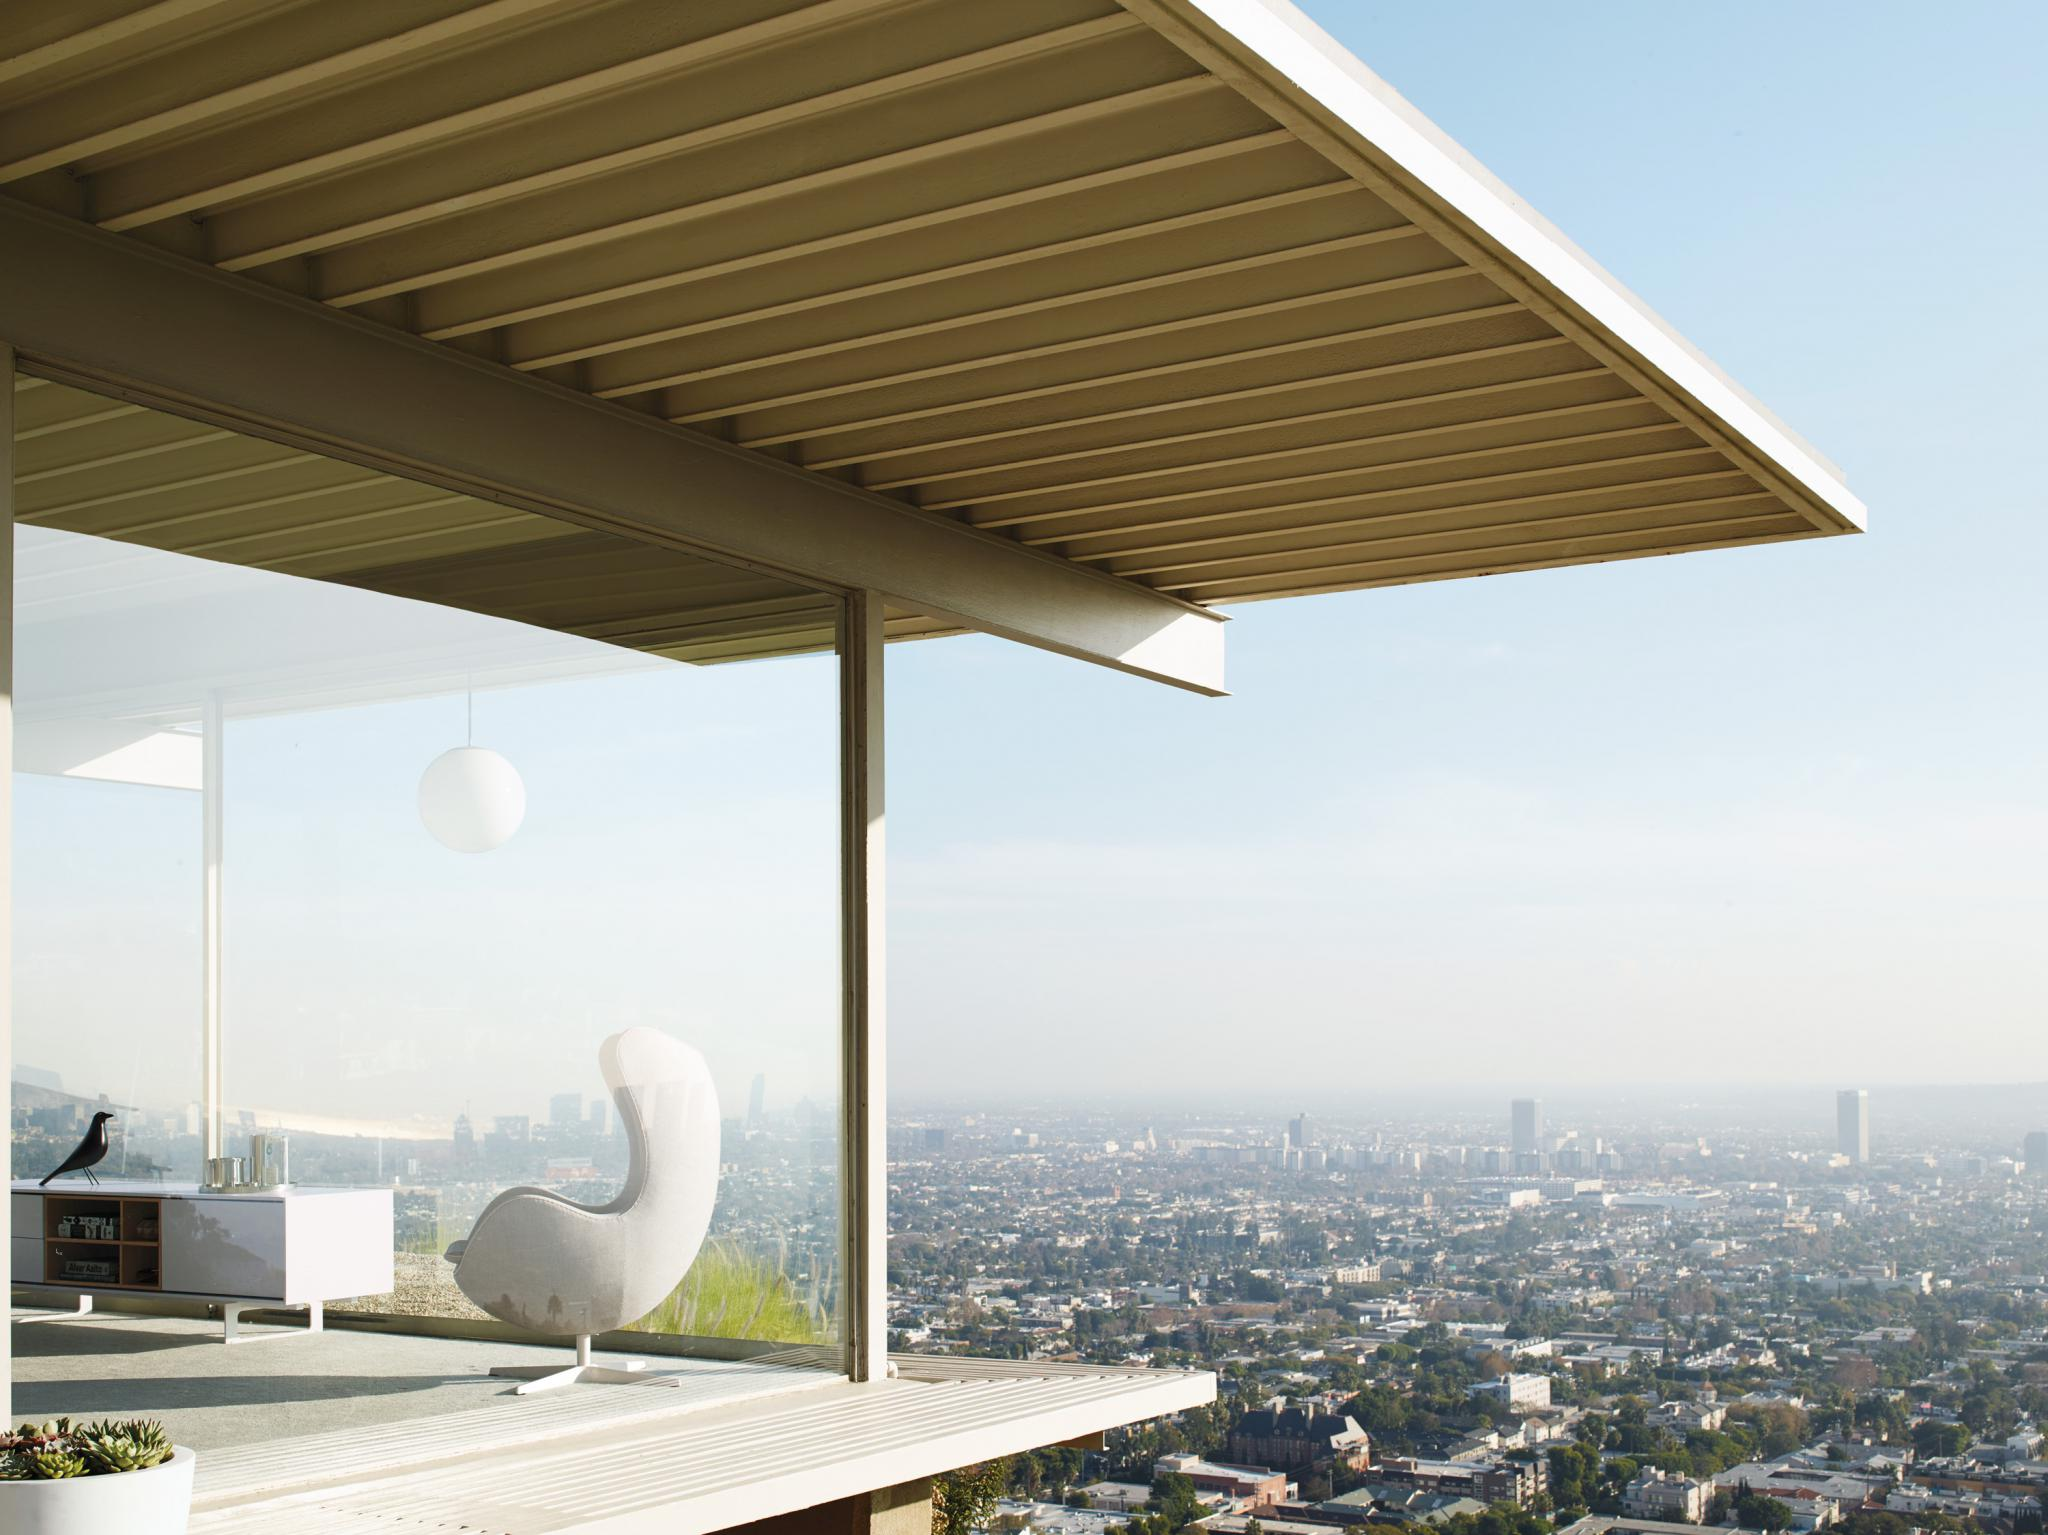 Los angeles architecture guide the art of travel by anne for Los angeles architecture